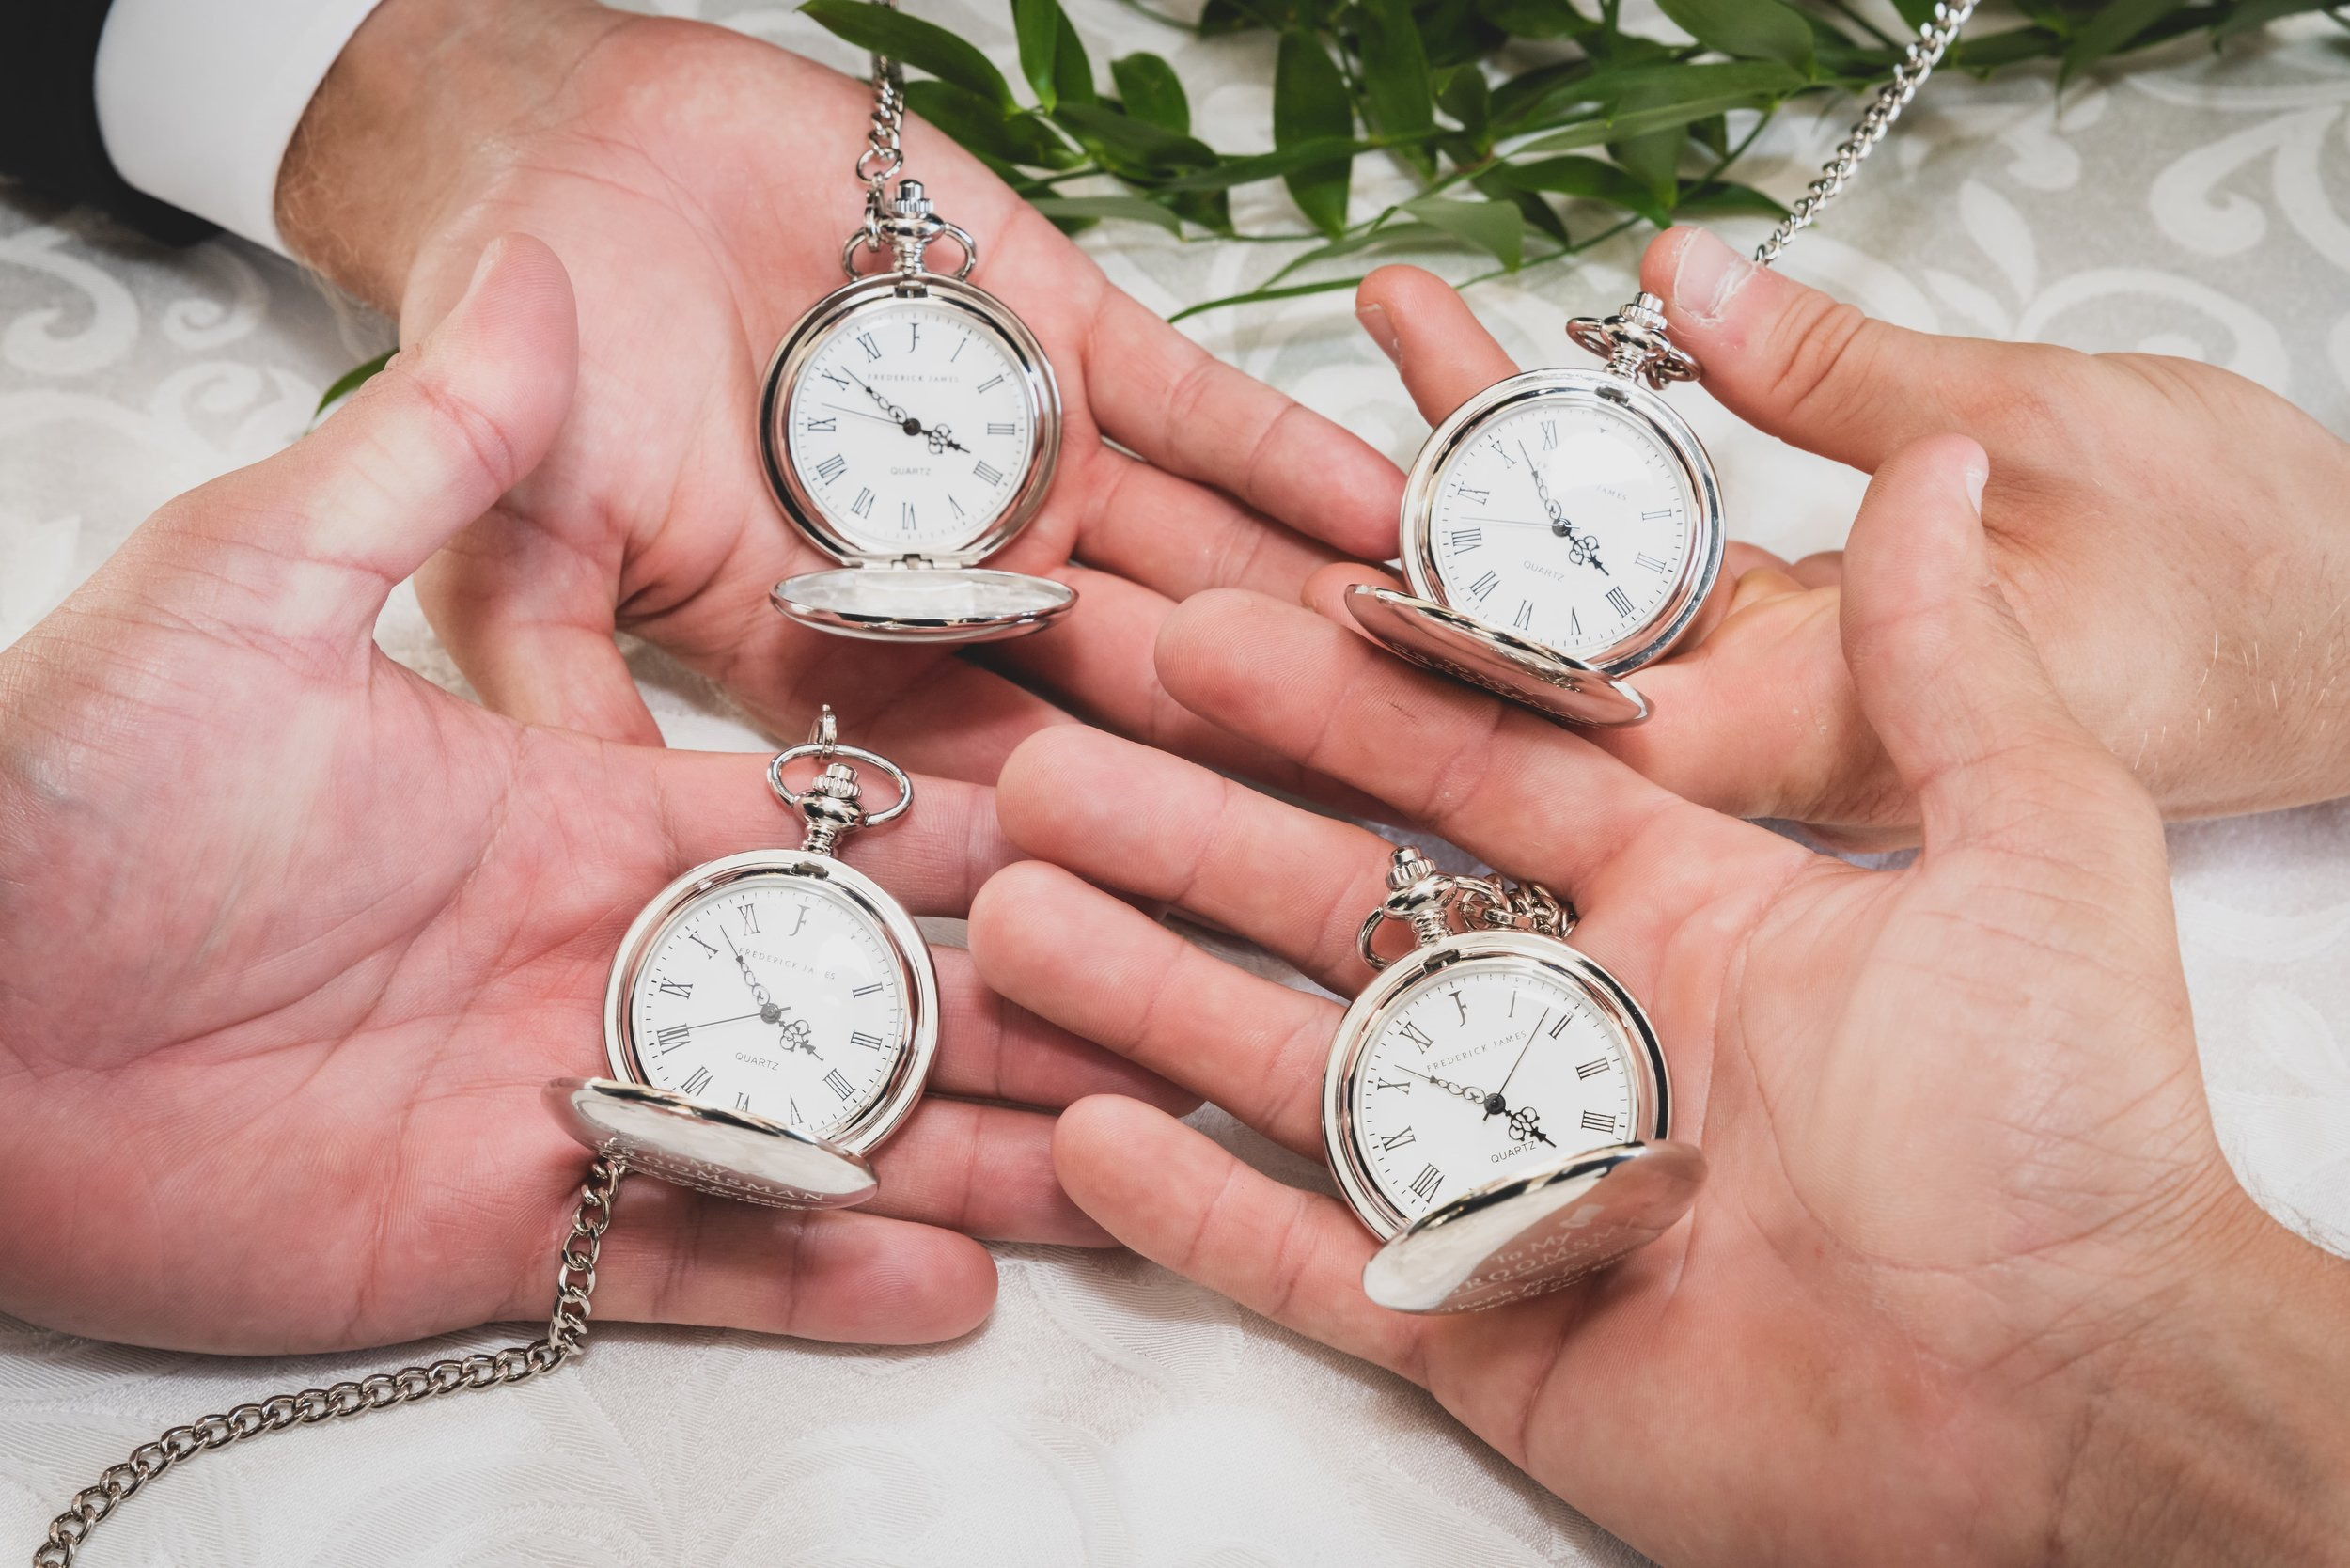 Four groomsman hands holding identical pocket watches.